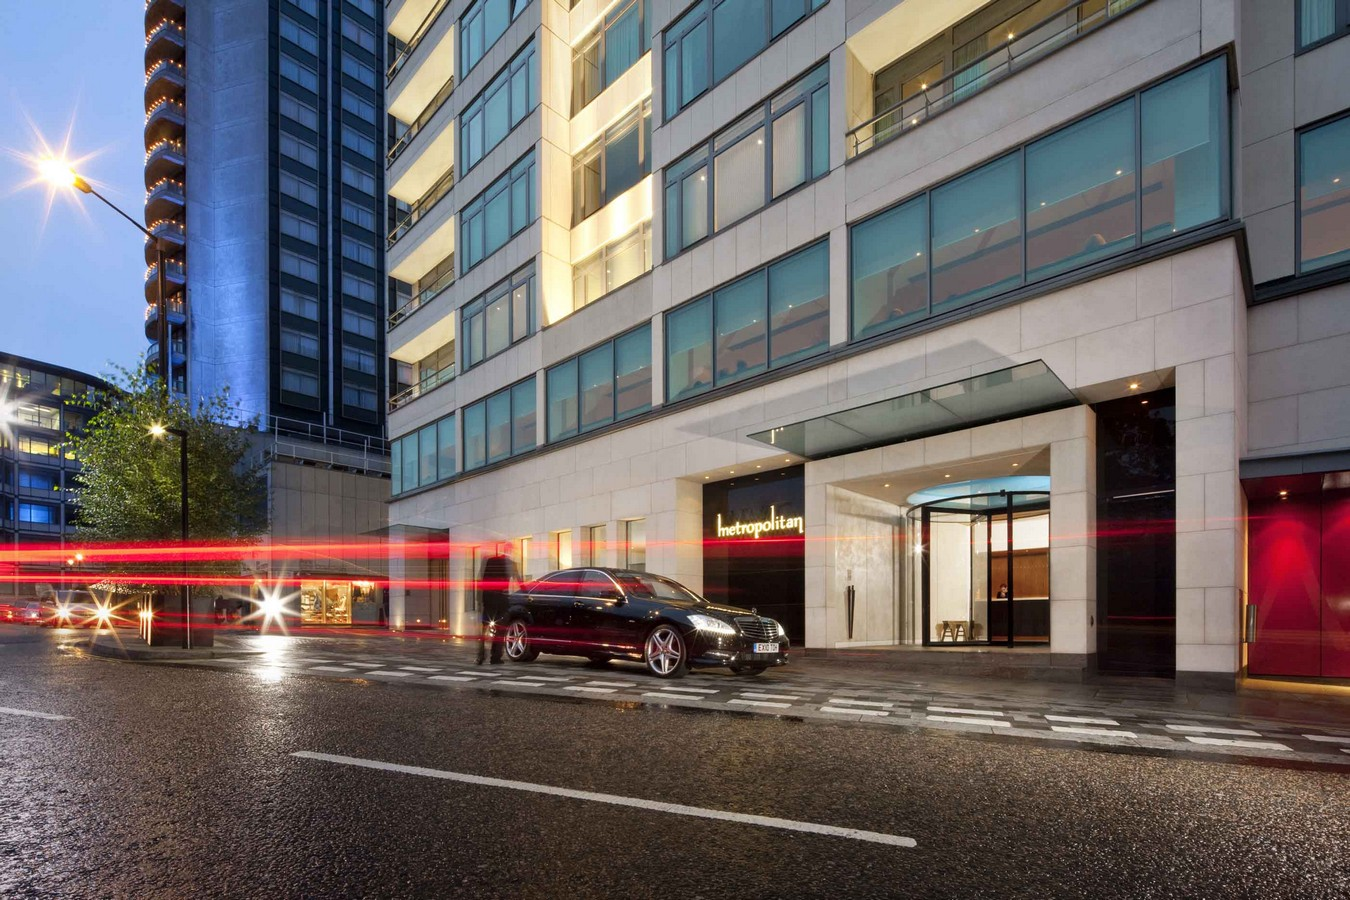 Metropolitan by COMO, London  - A one night stay with breakfast in a Metropolitan room at the